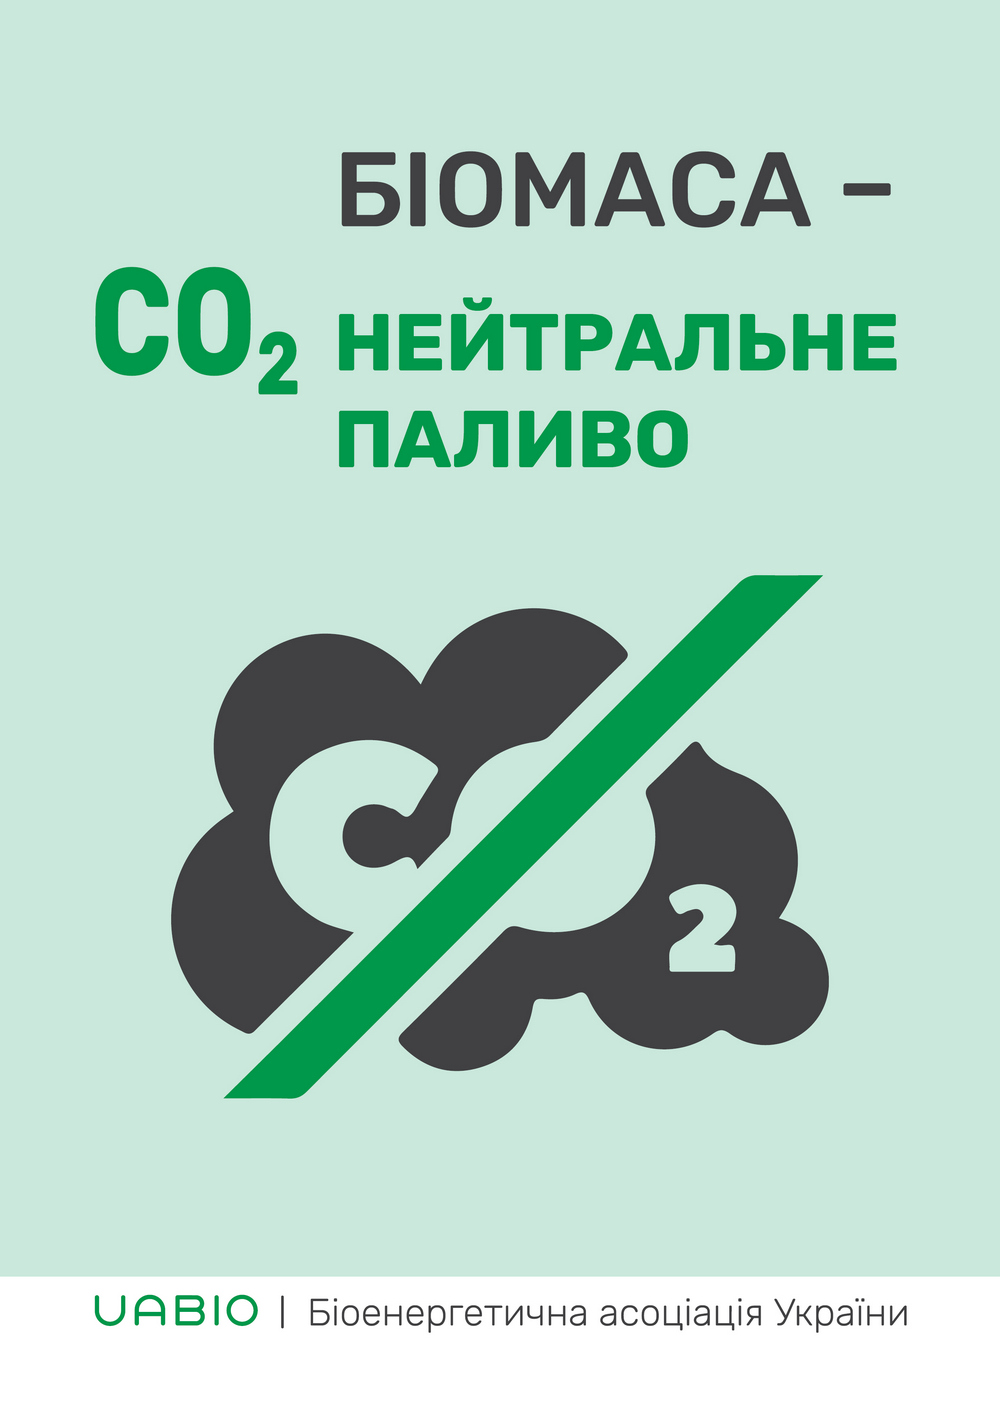 ukrainian-bioenergy-day-campaign-3.jpg